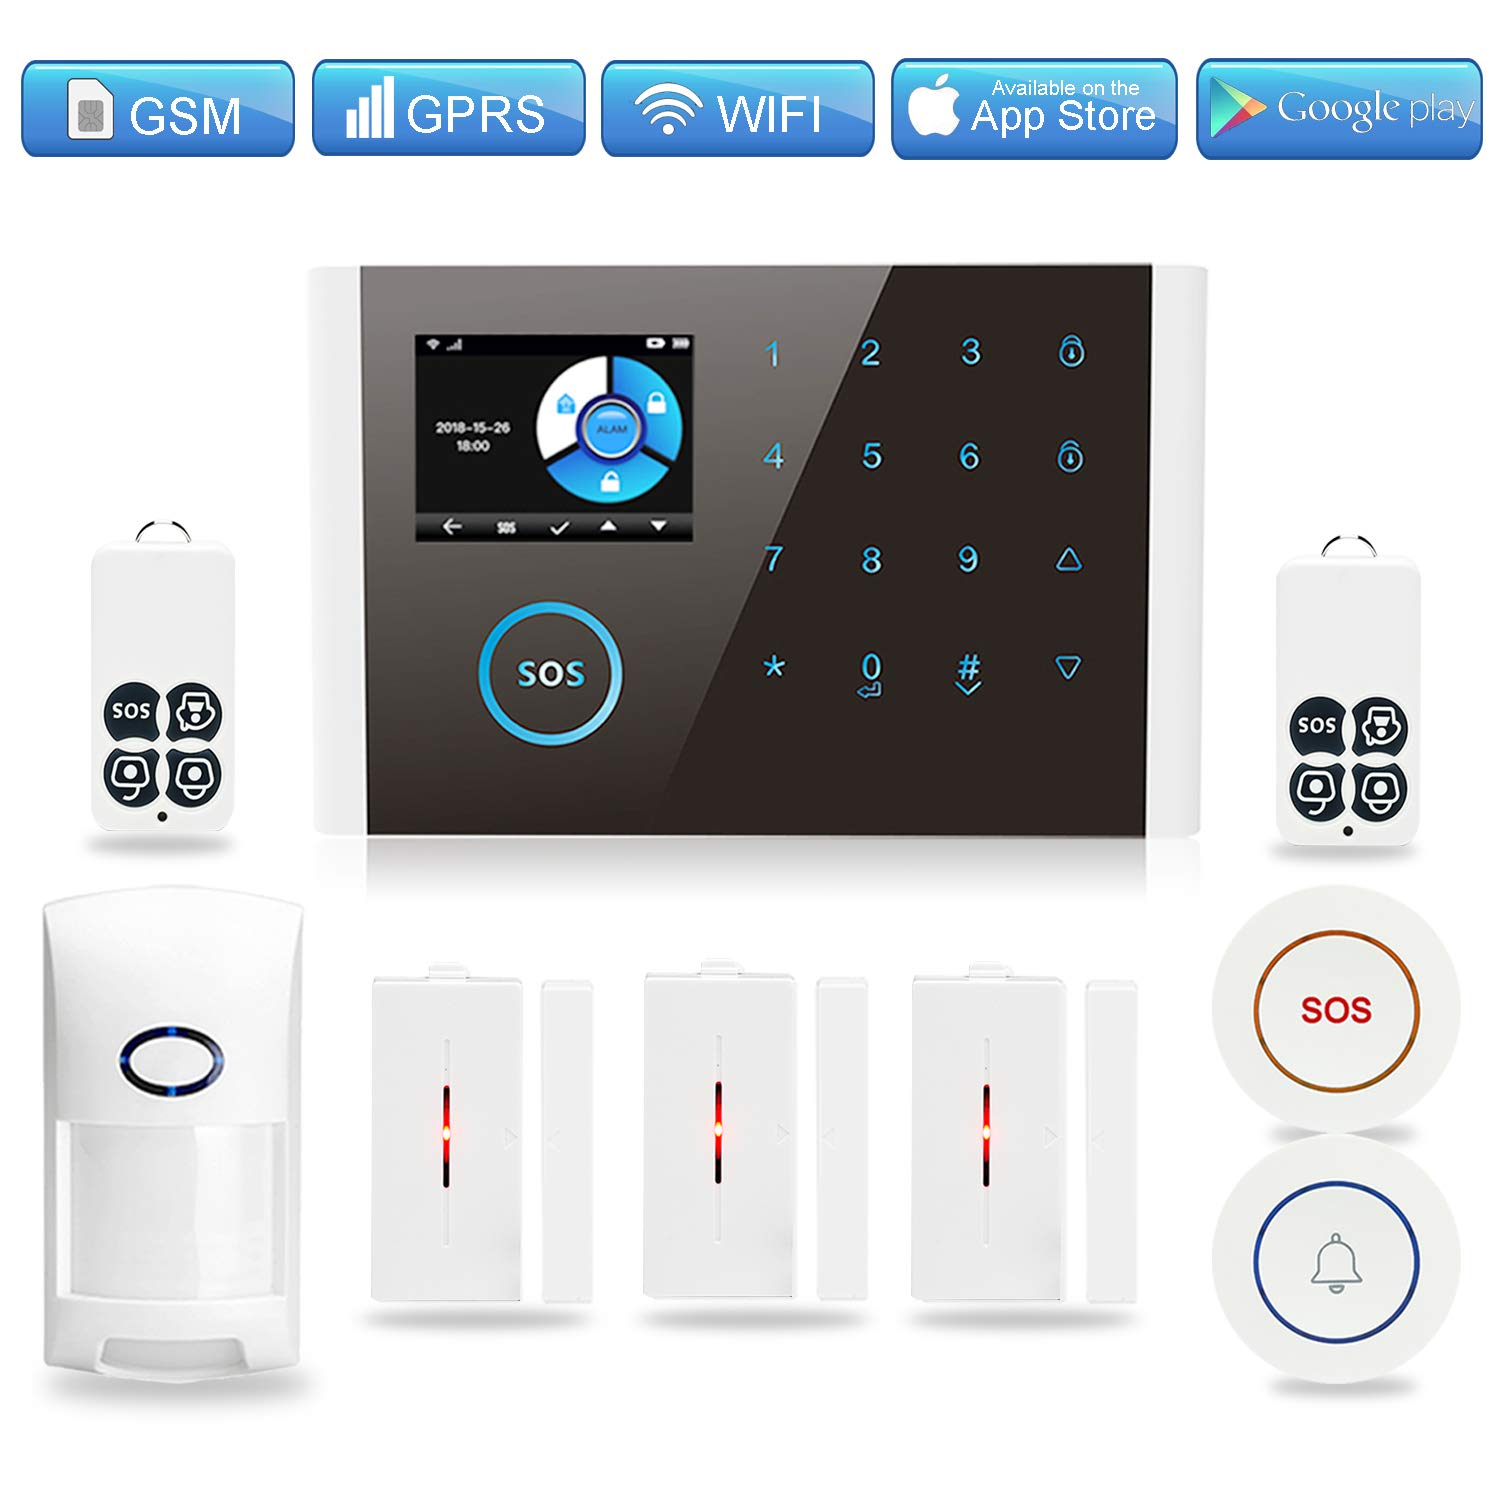 GSM WiFi Home Security Alarm System, TINGPO GPRS Wireless Burglar Alert Wi-Fi SMS Calling Alarms with 6 Door Sensors, 2 Motion Detectors, 1 SOS Call Button, 1 Doorbell Button and 2 Remote Fobs by TINGPO